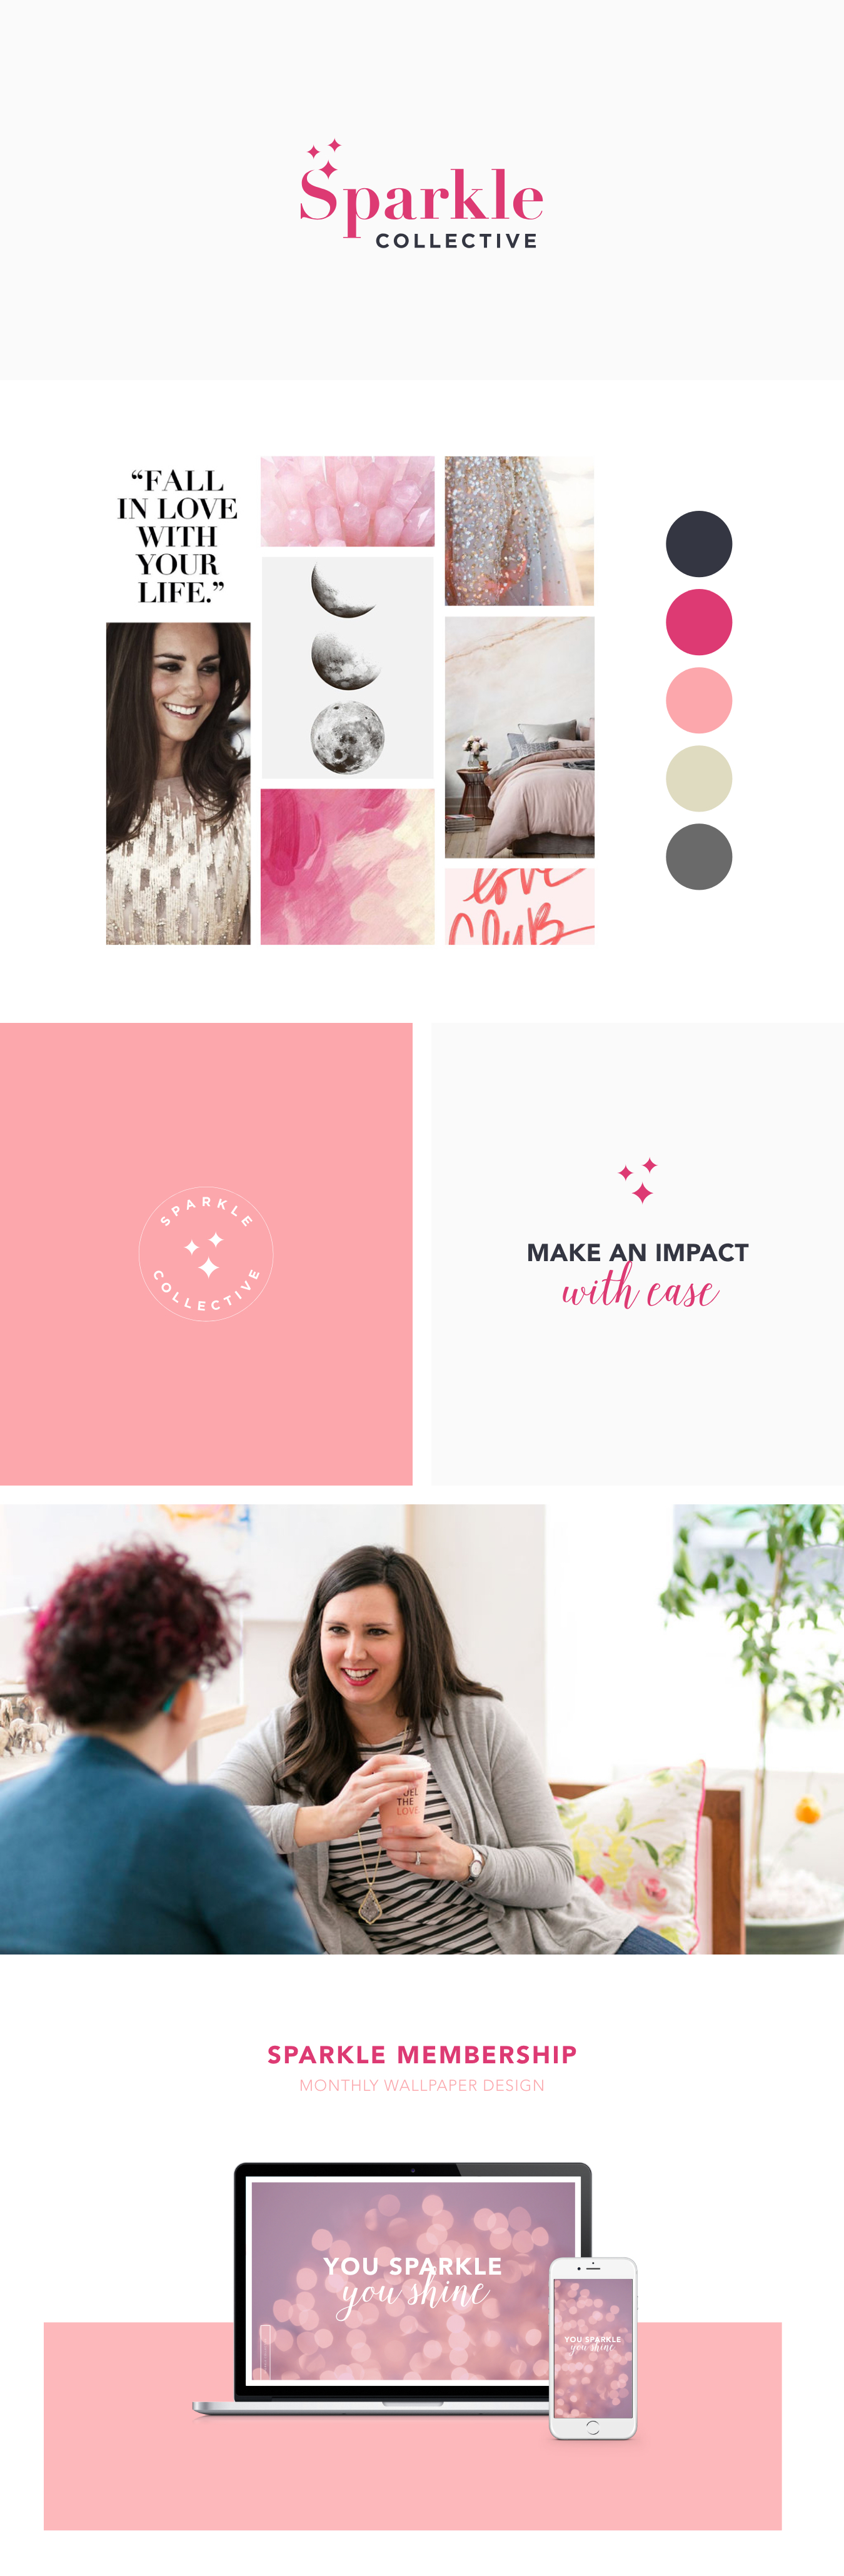 Sparkle Collective | Brand Design | Inspiration | Logo Design | Samantha Madeo Design